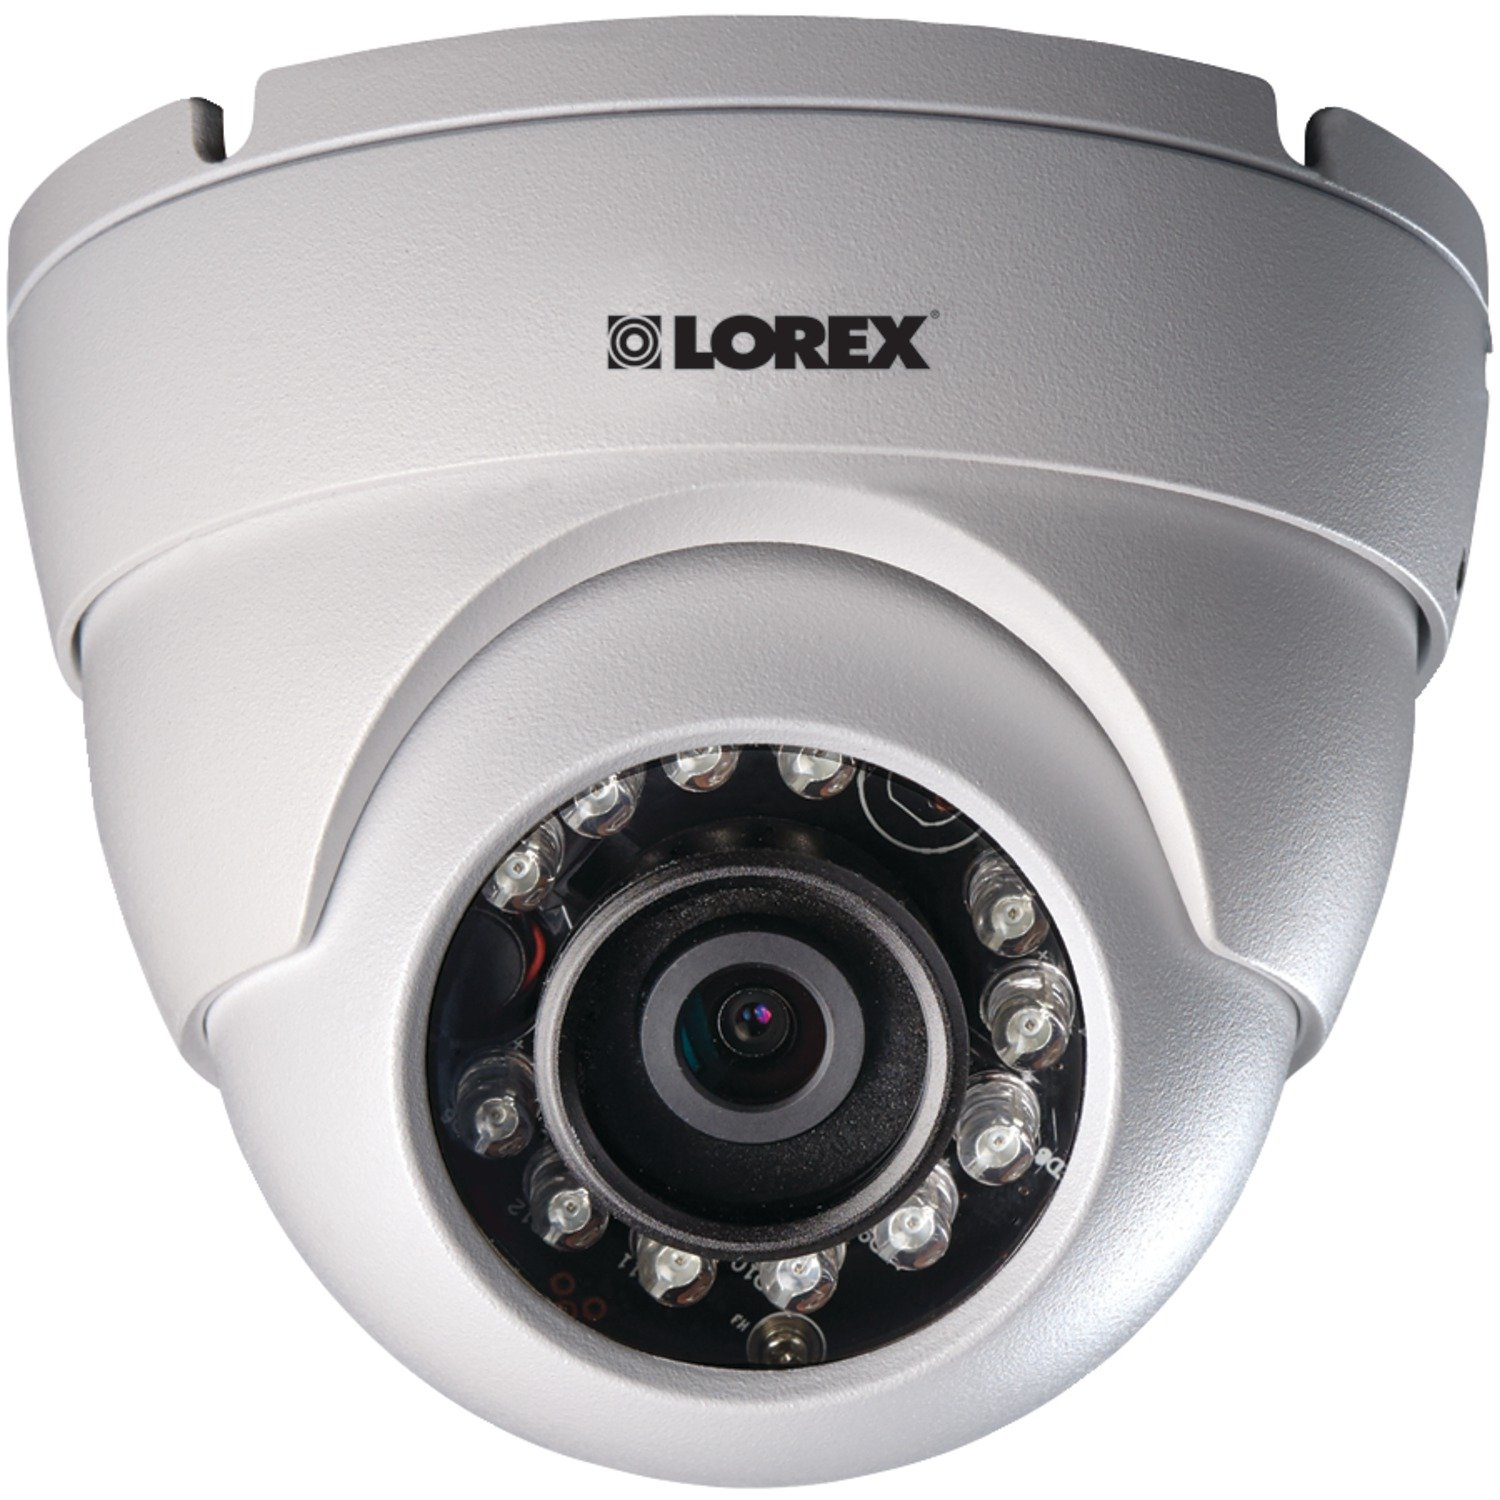 Lorex LNE3142B 1080p Hd Ip DOME Camera For Lnr100 Lnr400 Series Nvrs